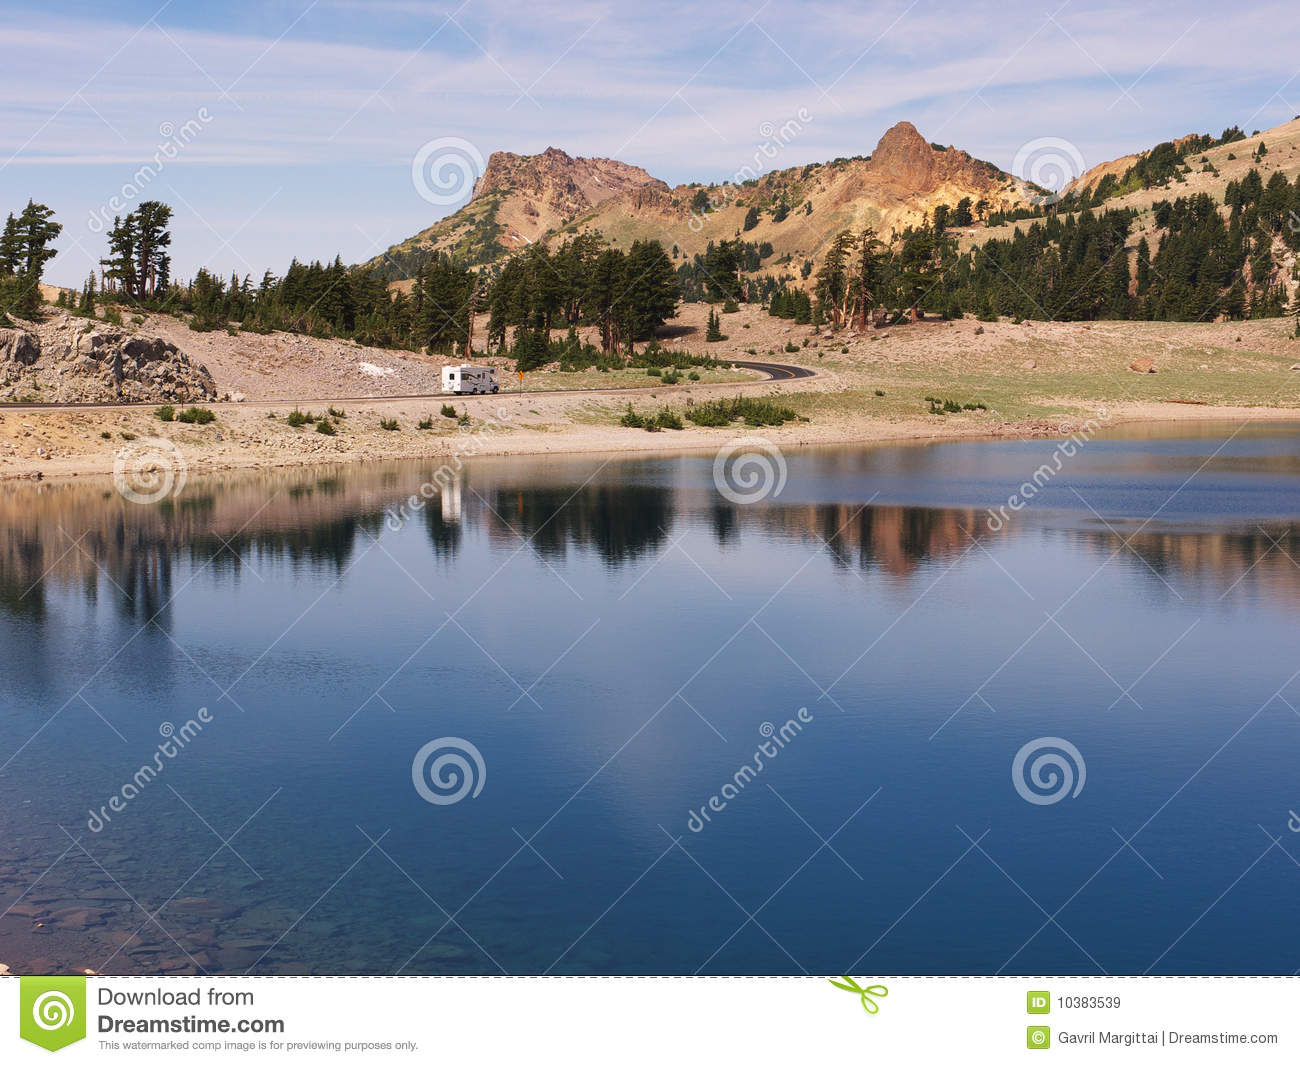 Go Rv Ing Lake And Rv Landscape Royalty Free Stock Images